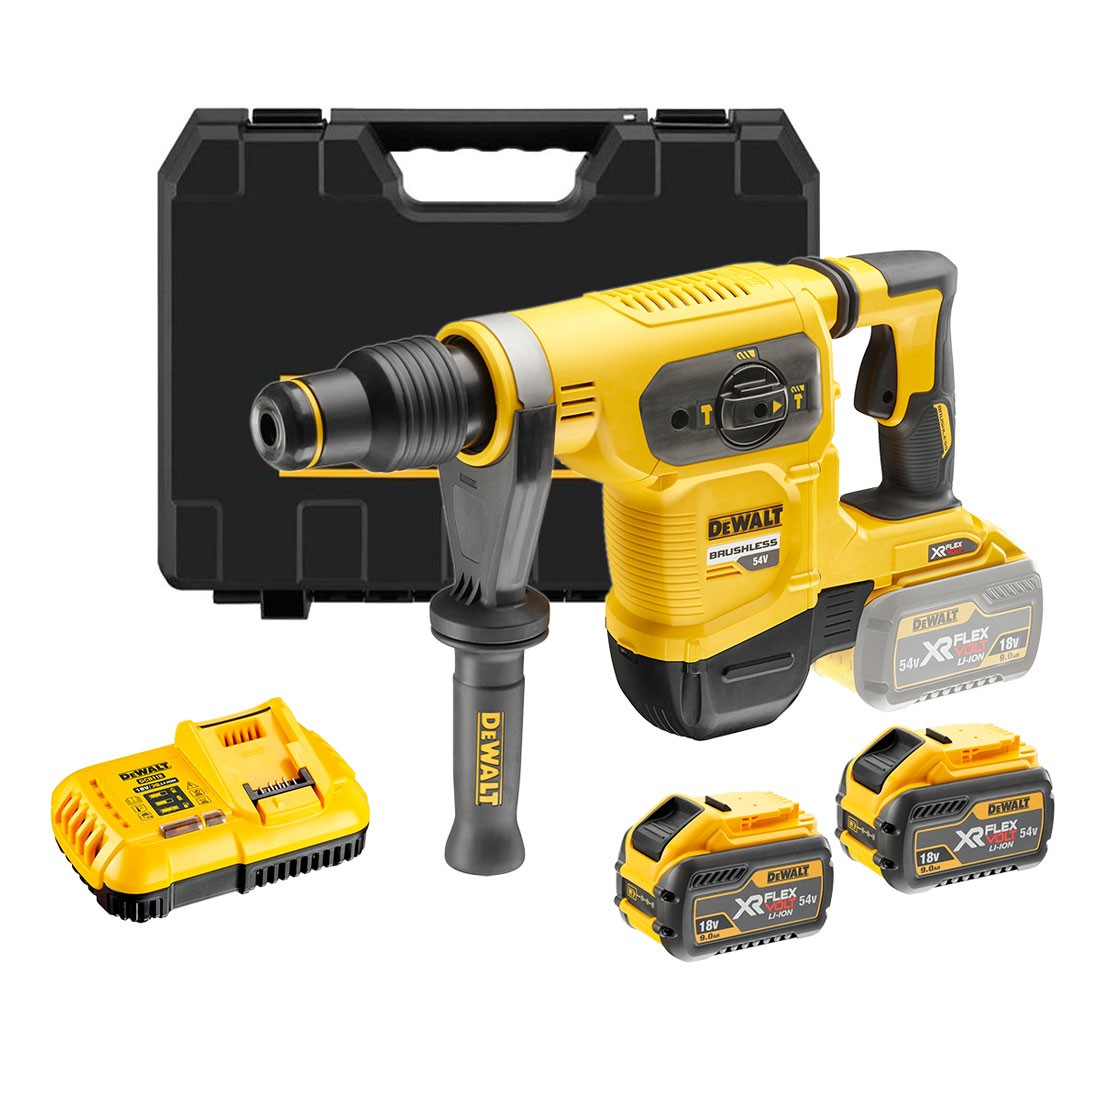 dewalt dch481x2 gb 54v xr flexvolt cordless brushless sds. Black Bedroom Furniture Sets. Home Design Ideas